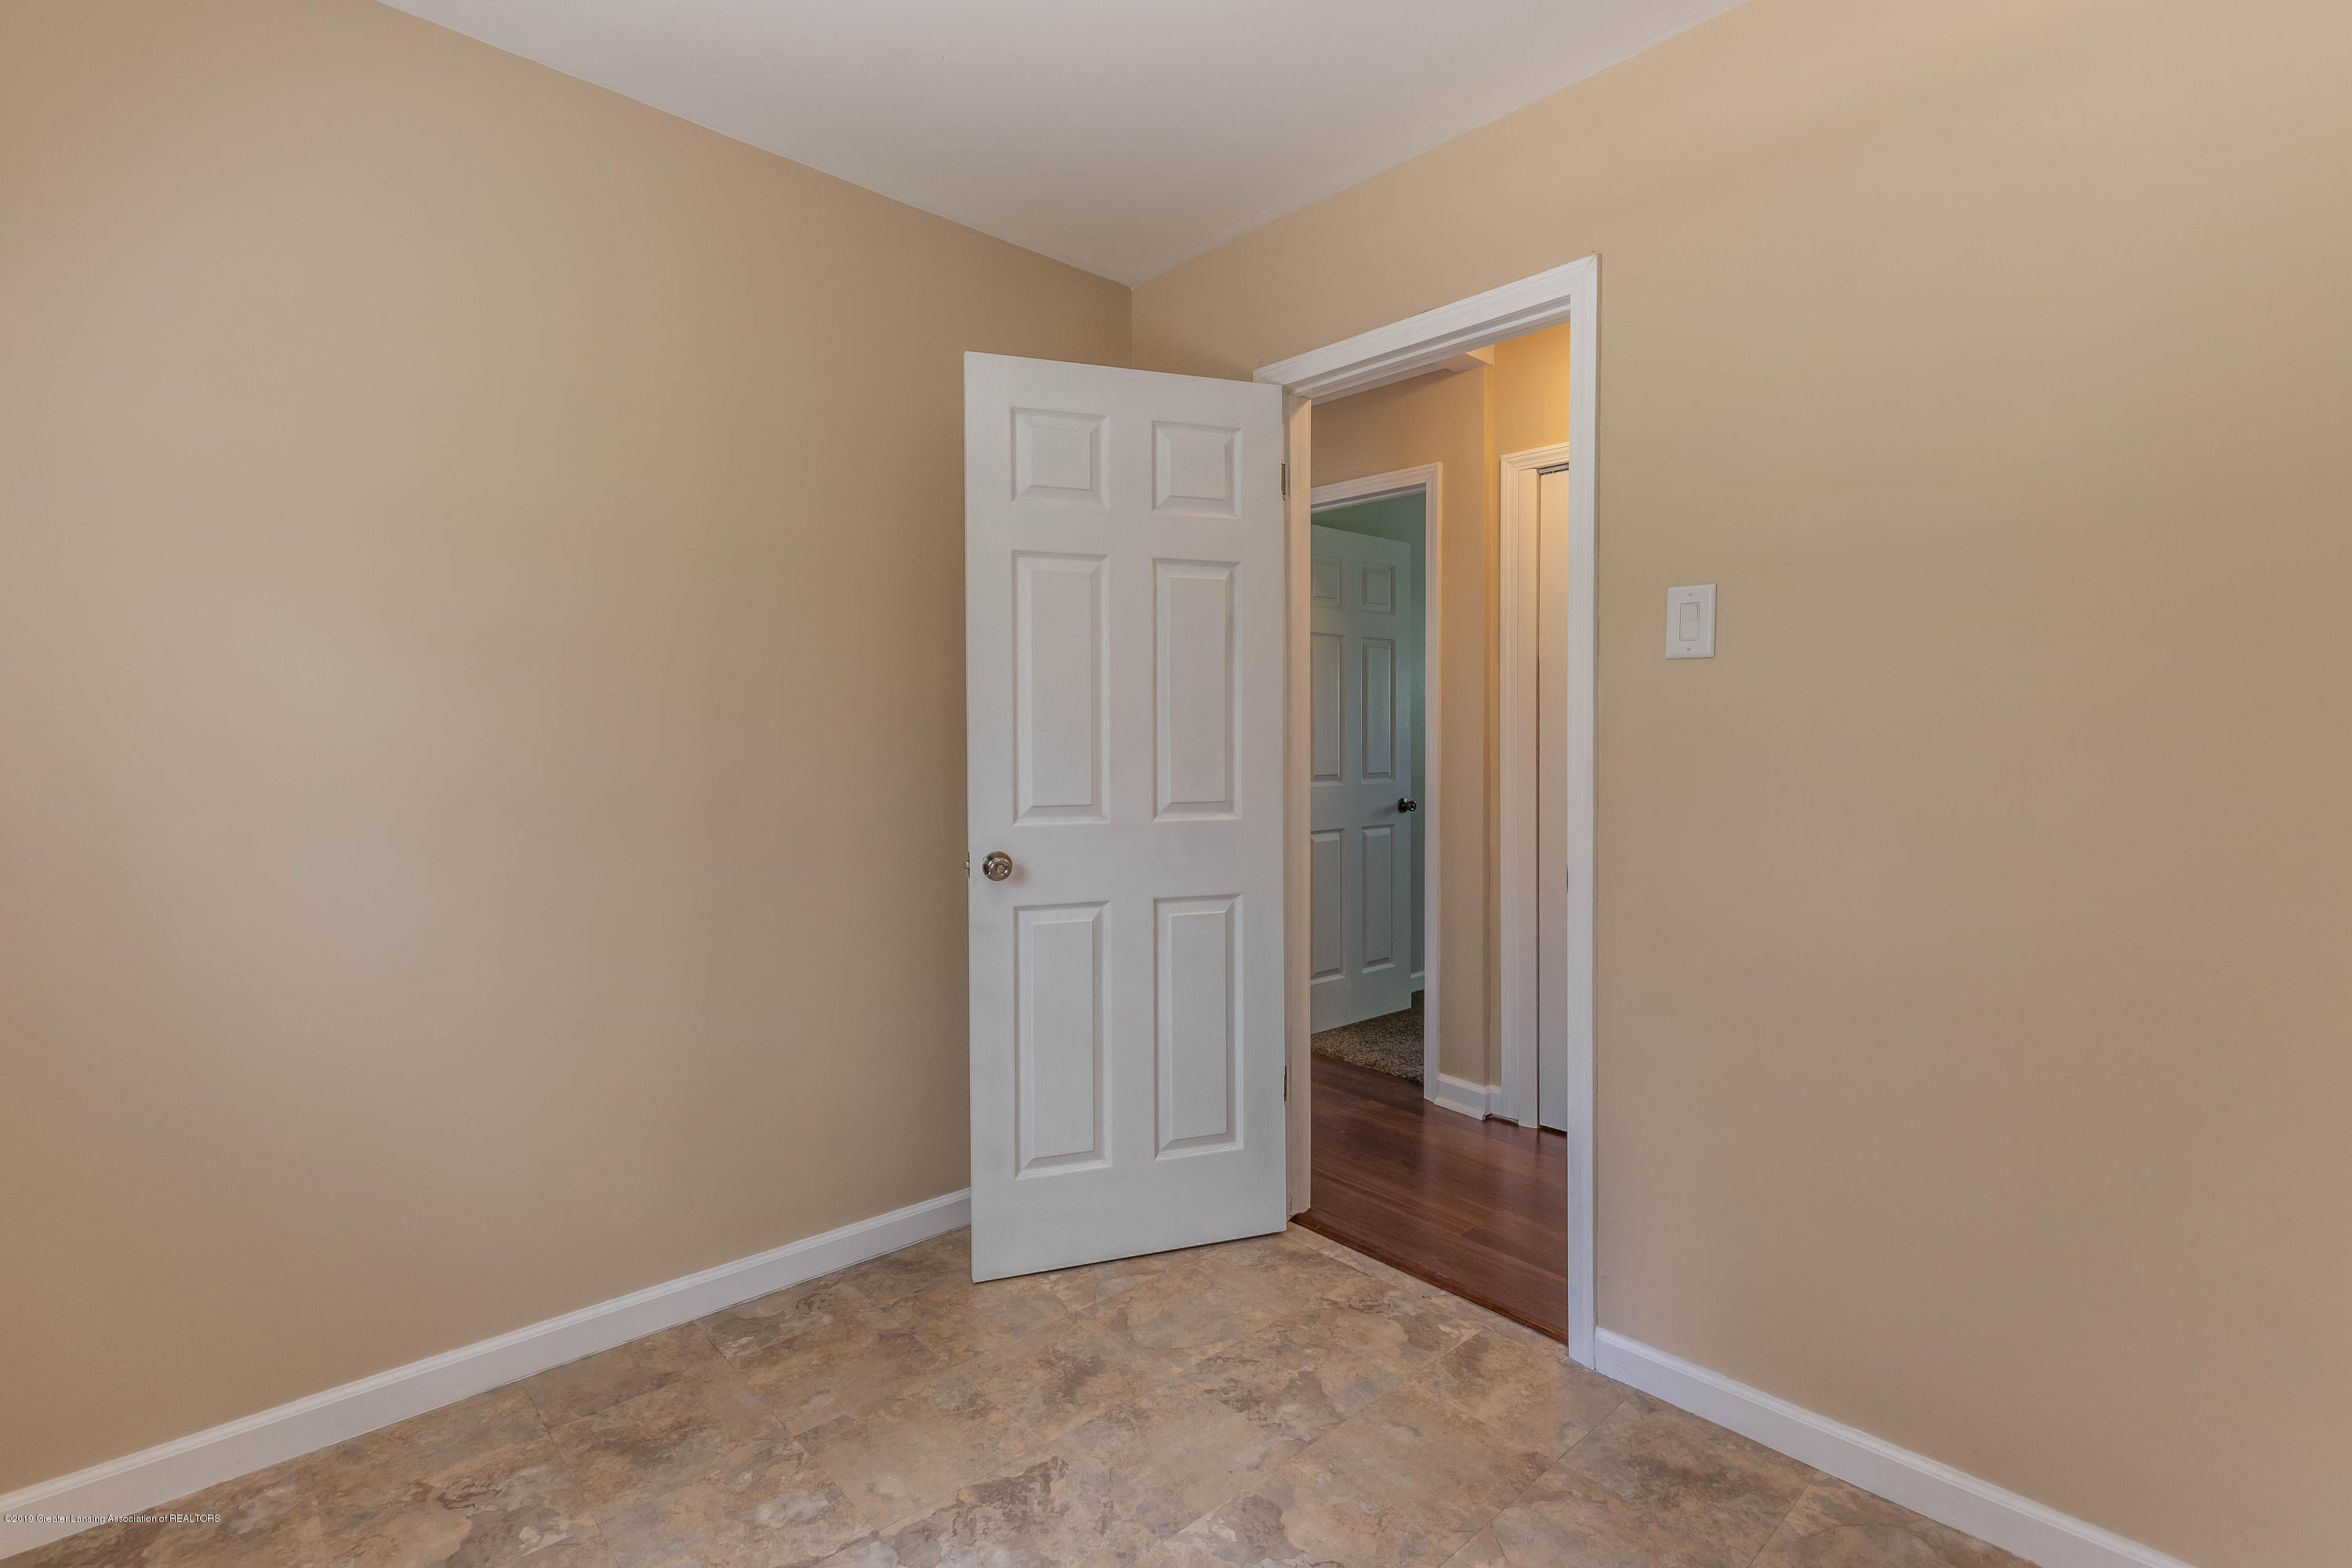 8344 M 21 - Other room - 24